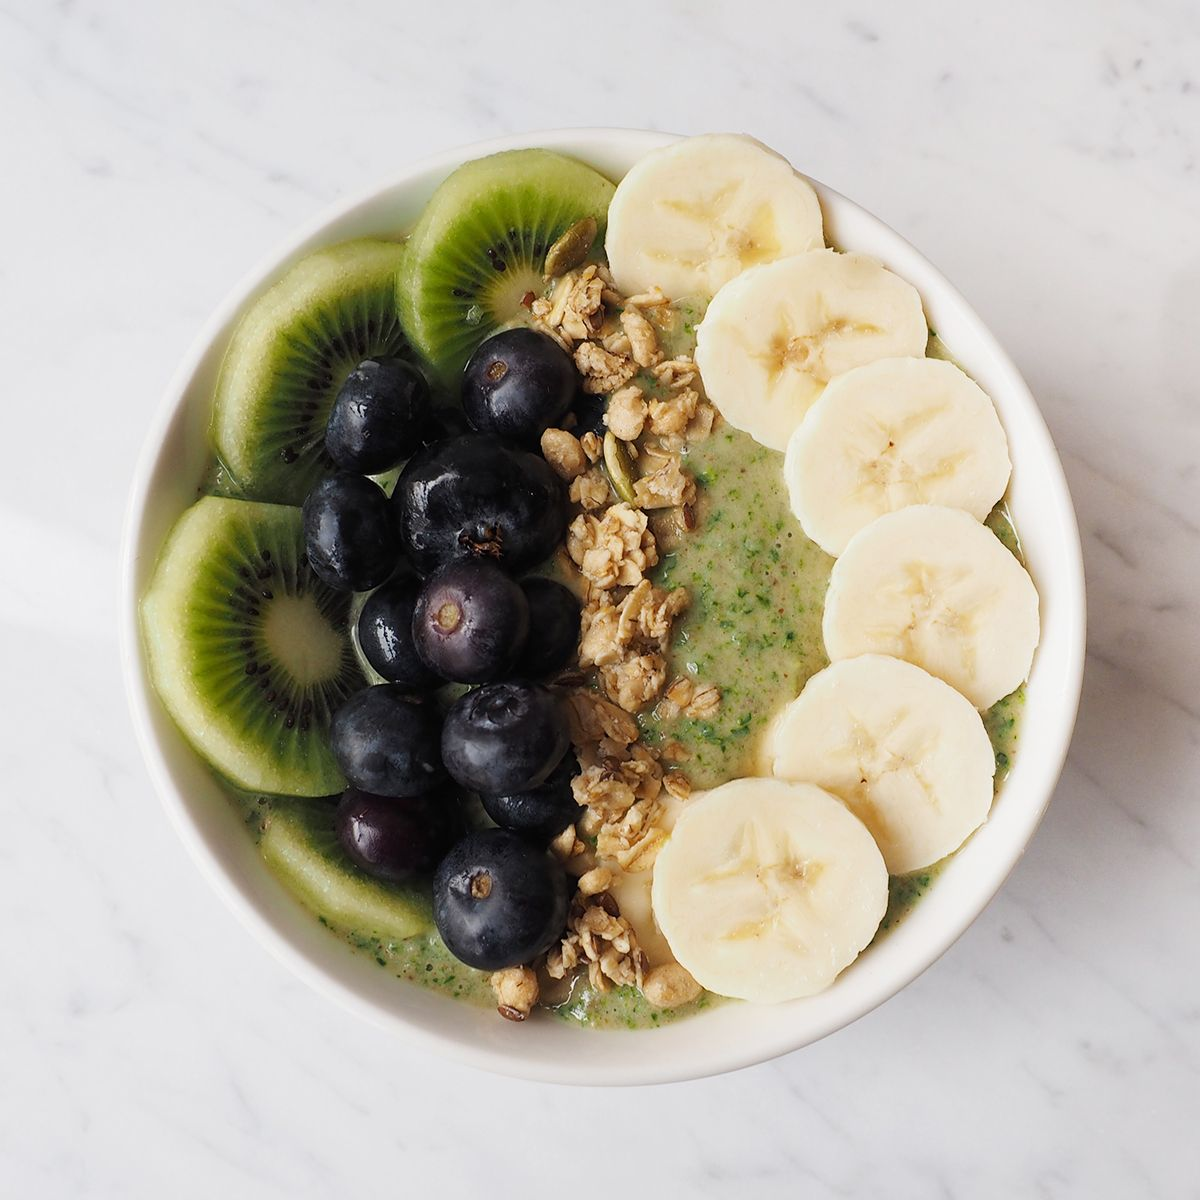 Healthy smoothie bowl recipes packed with nutritious ingredients | Fabletics Blog